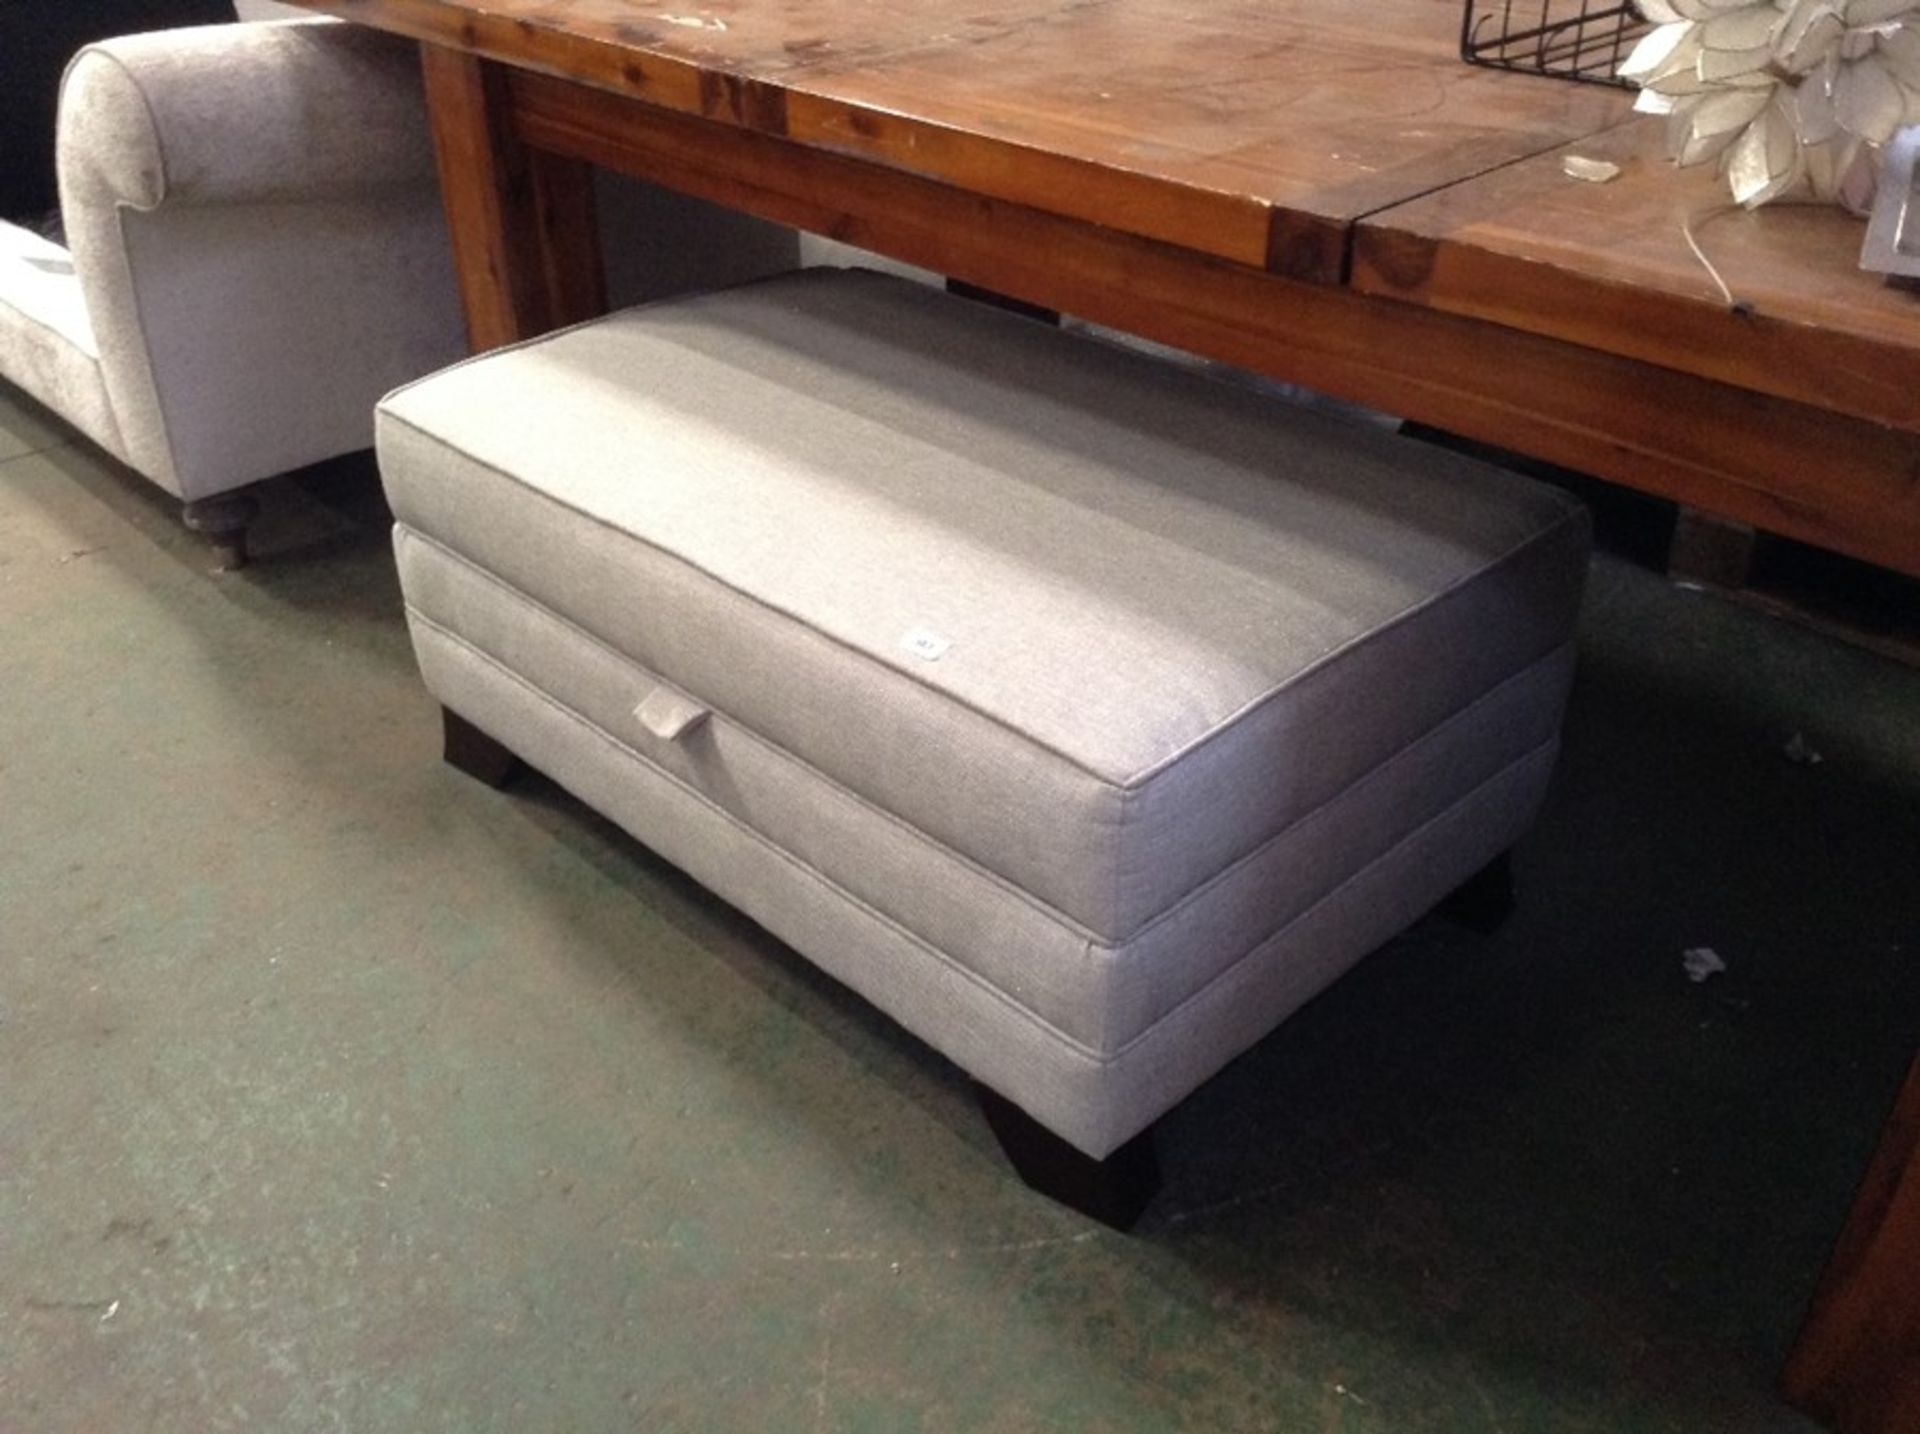 SILVER AND GREY STORAGE FOOTSTOOL (HH29_714887-3) - Image 3 of 3